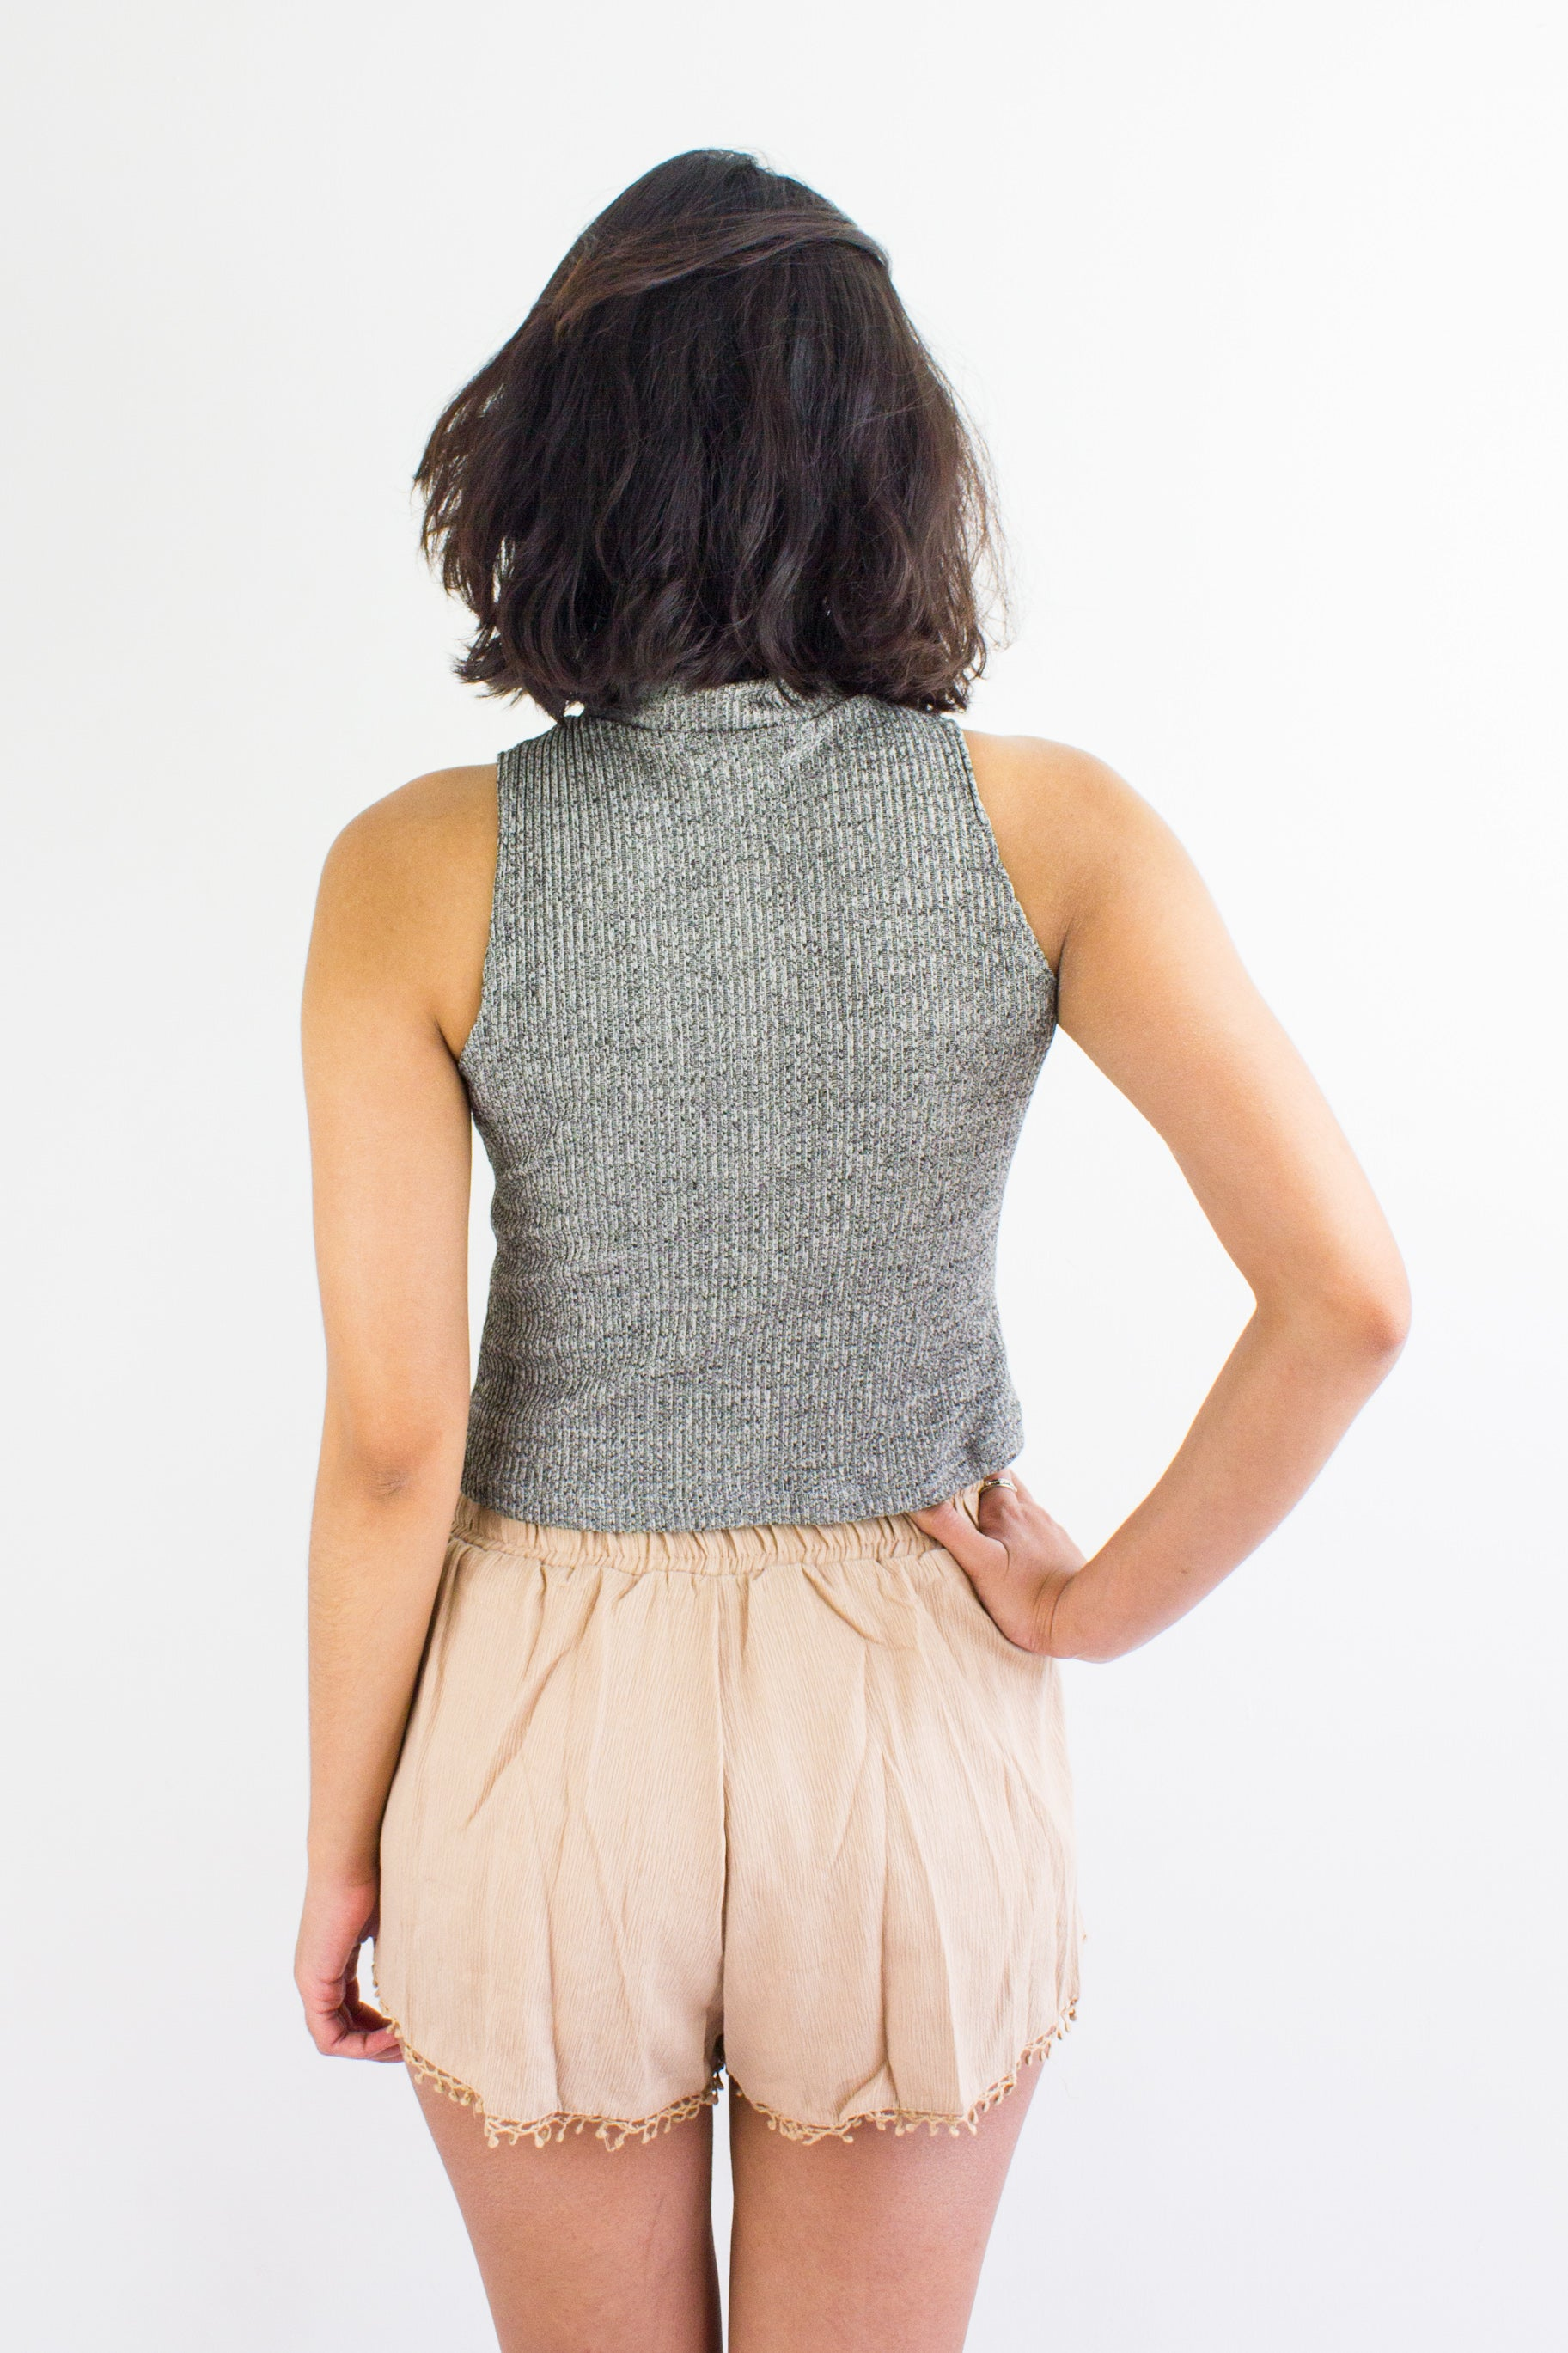 Peep Hole Top in Speckled Grey